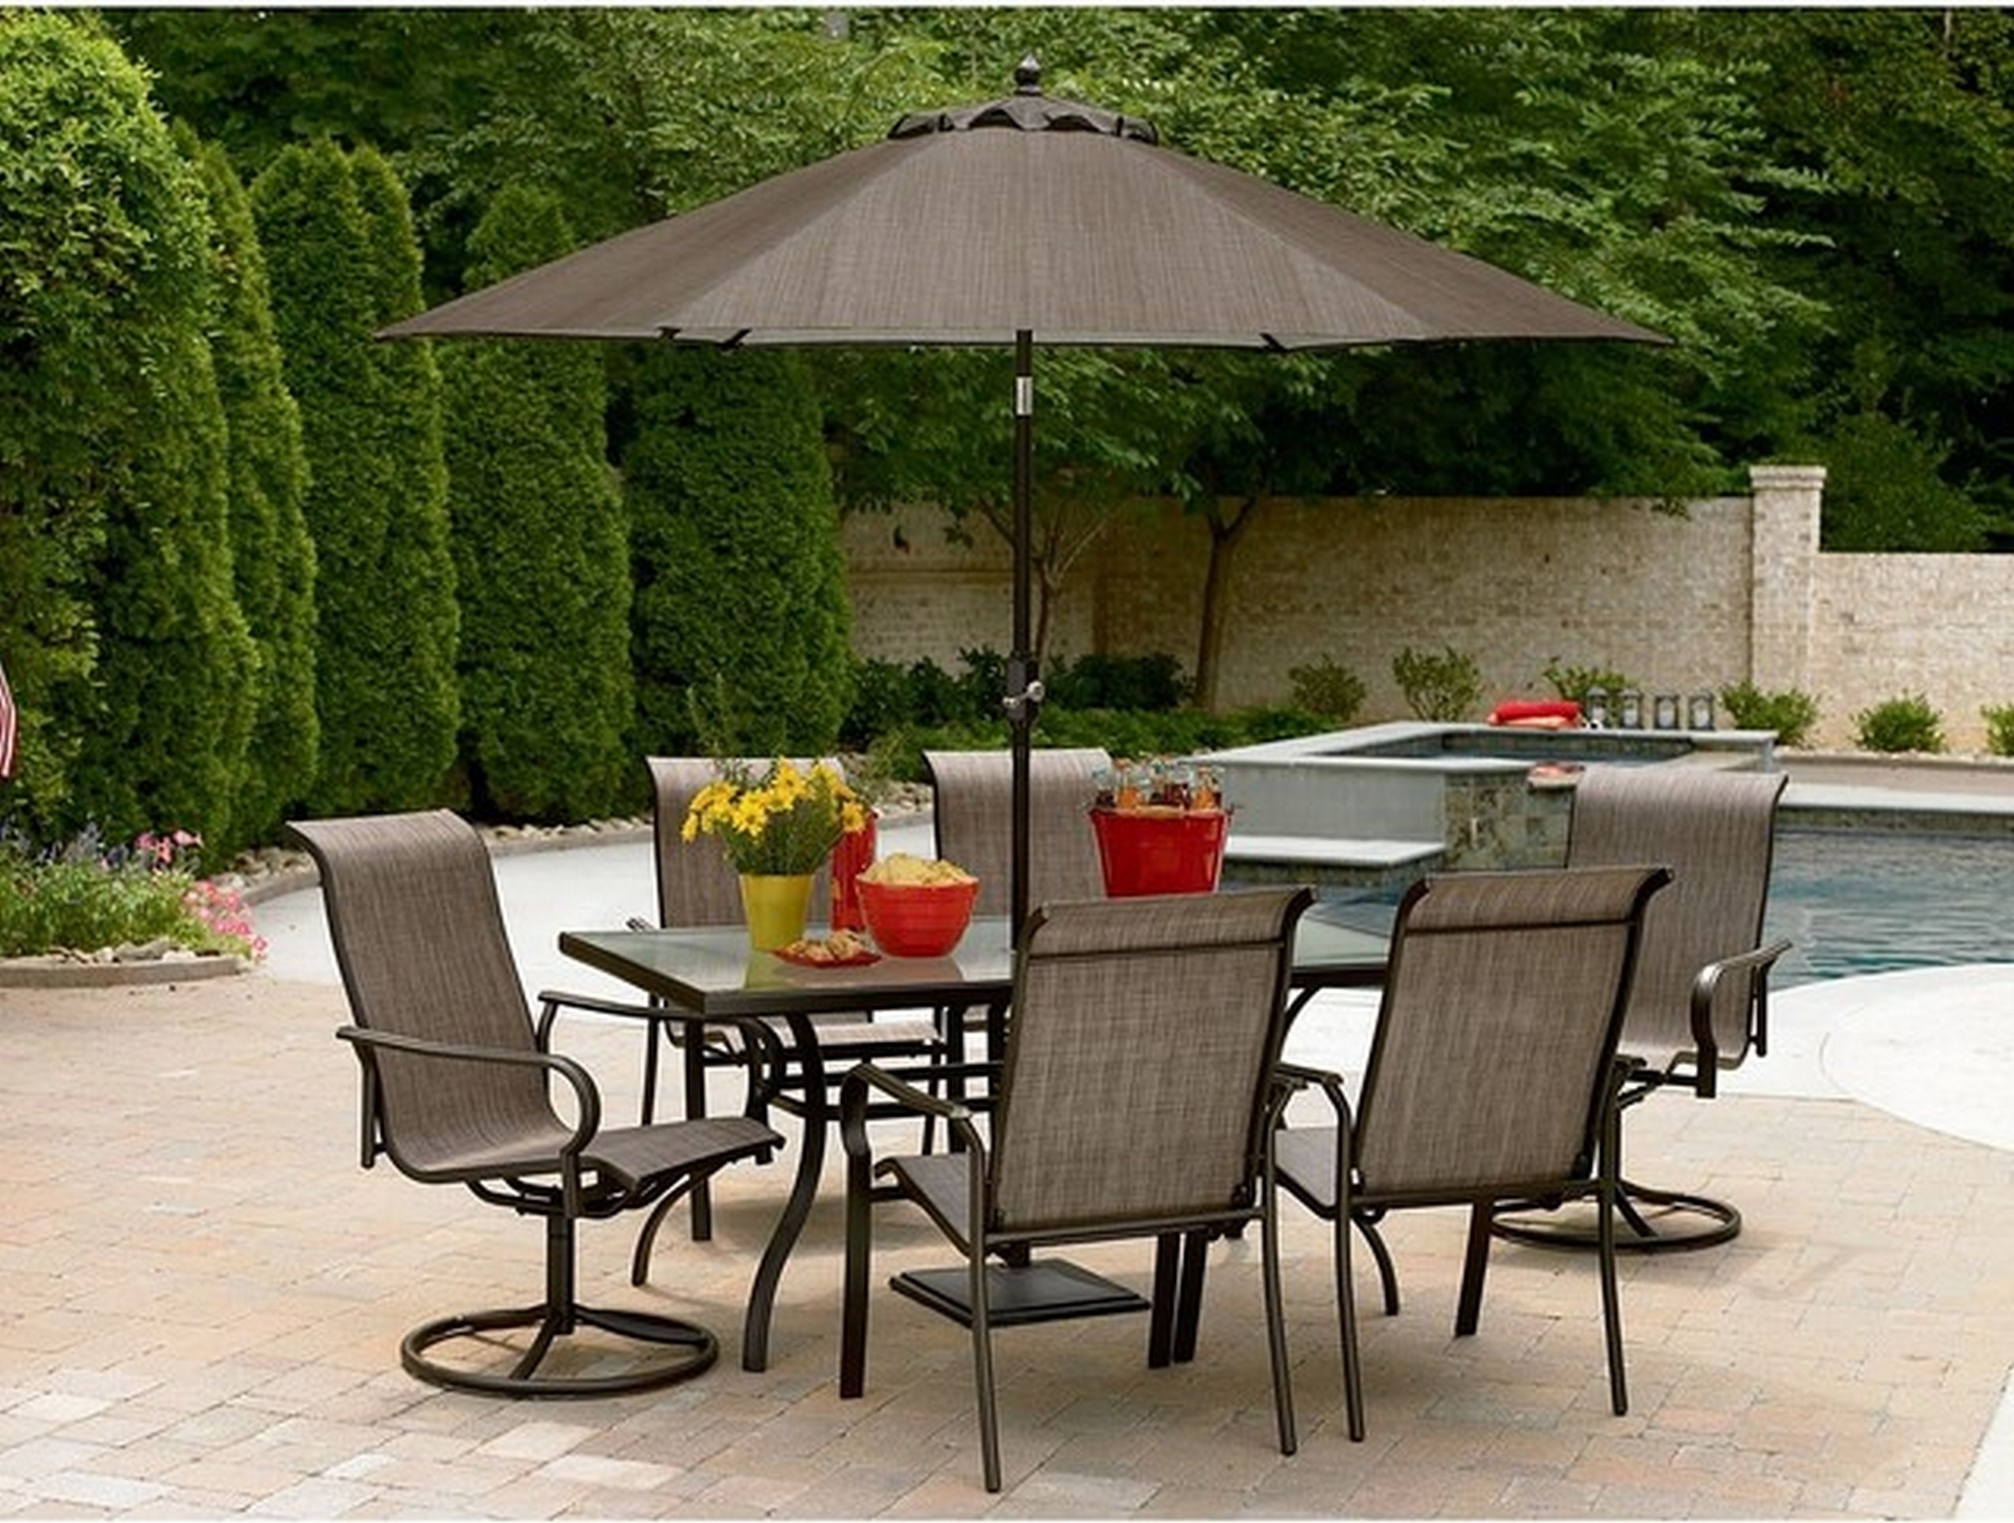 Popular Patios: Outstanding Patio Umbrella Walmart For Stunning Patio Within Free Standing Umbrellas For Patio (View 19 of 20)